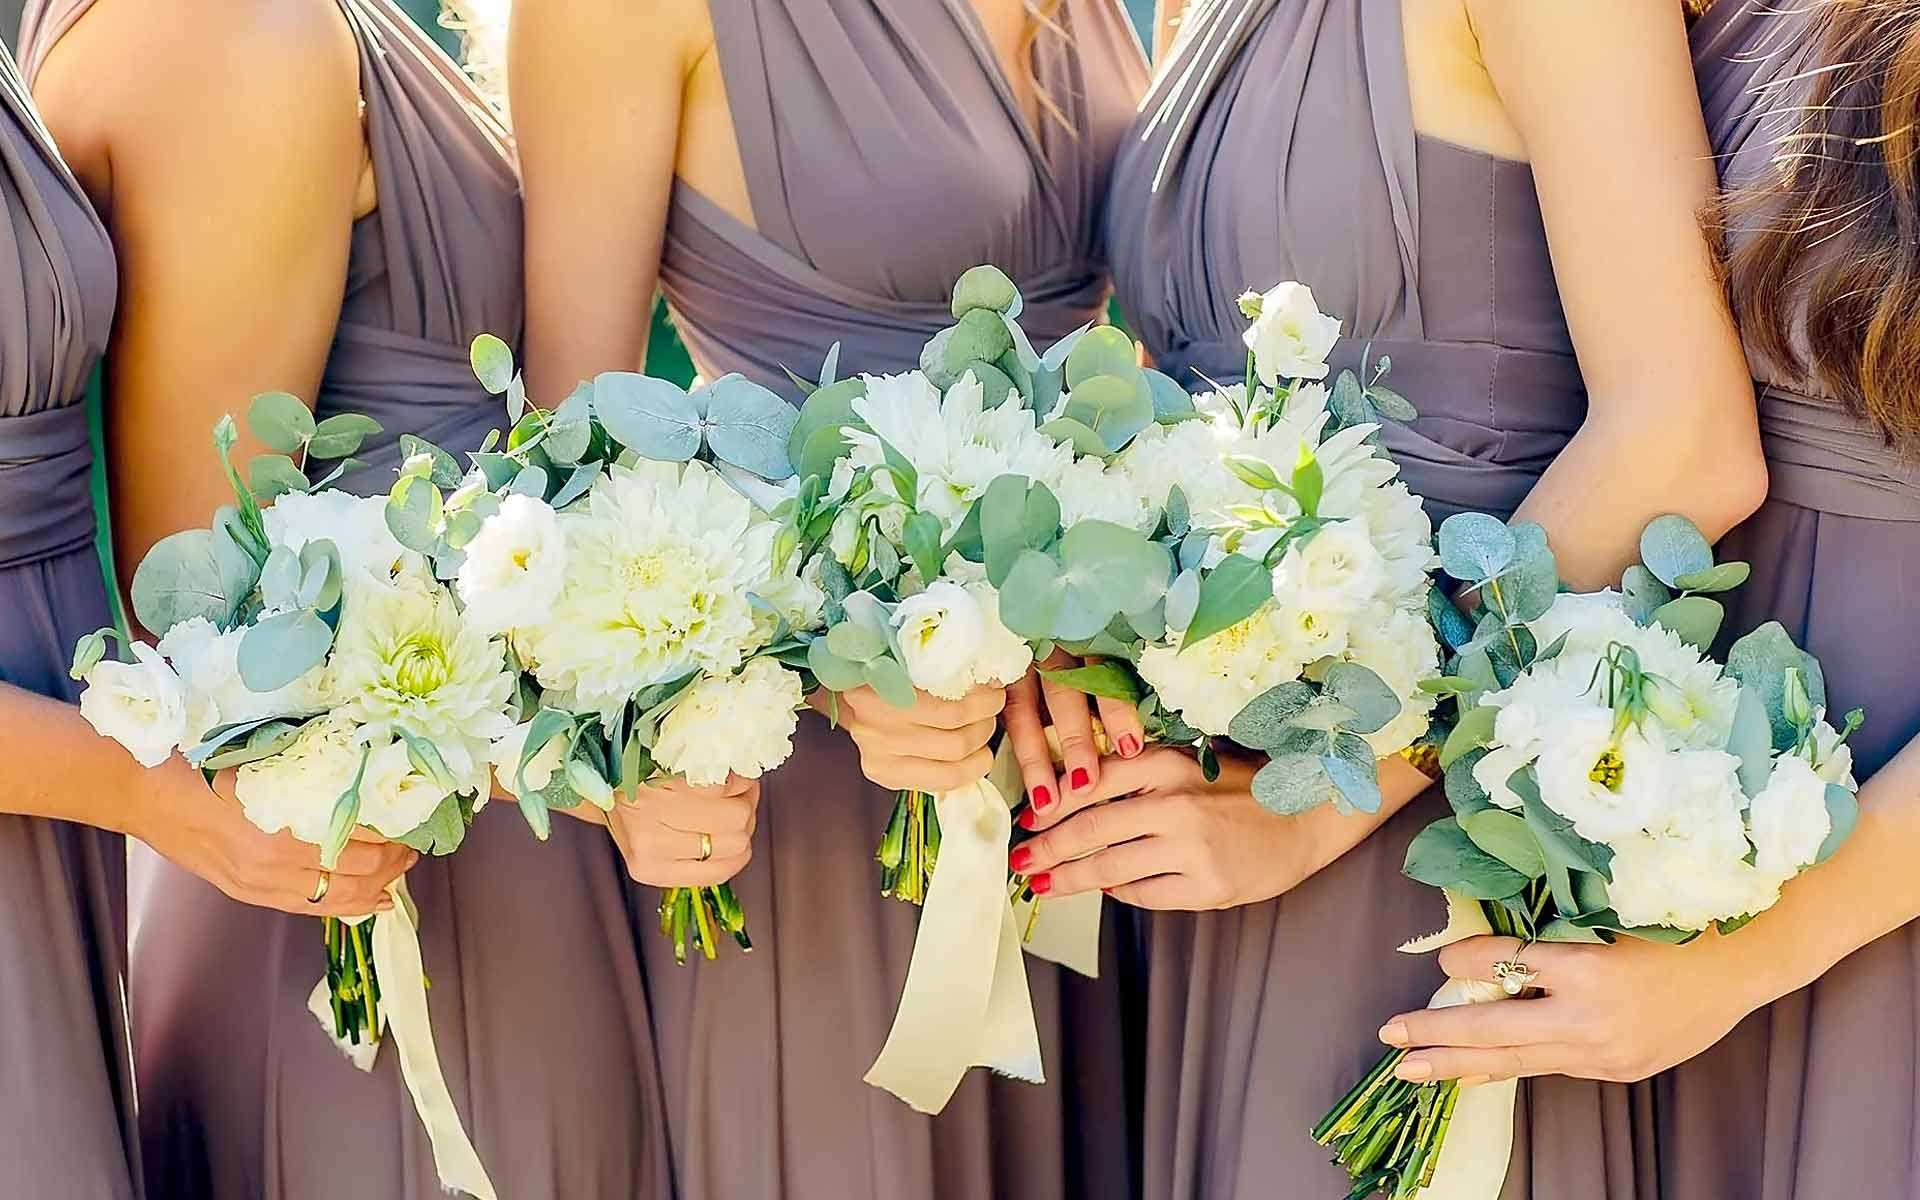 Popping-Pastel-Green-Leaves-Give-Character-To-These-Simple-White-Bouquets